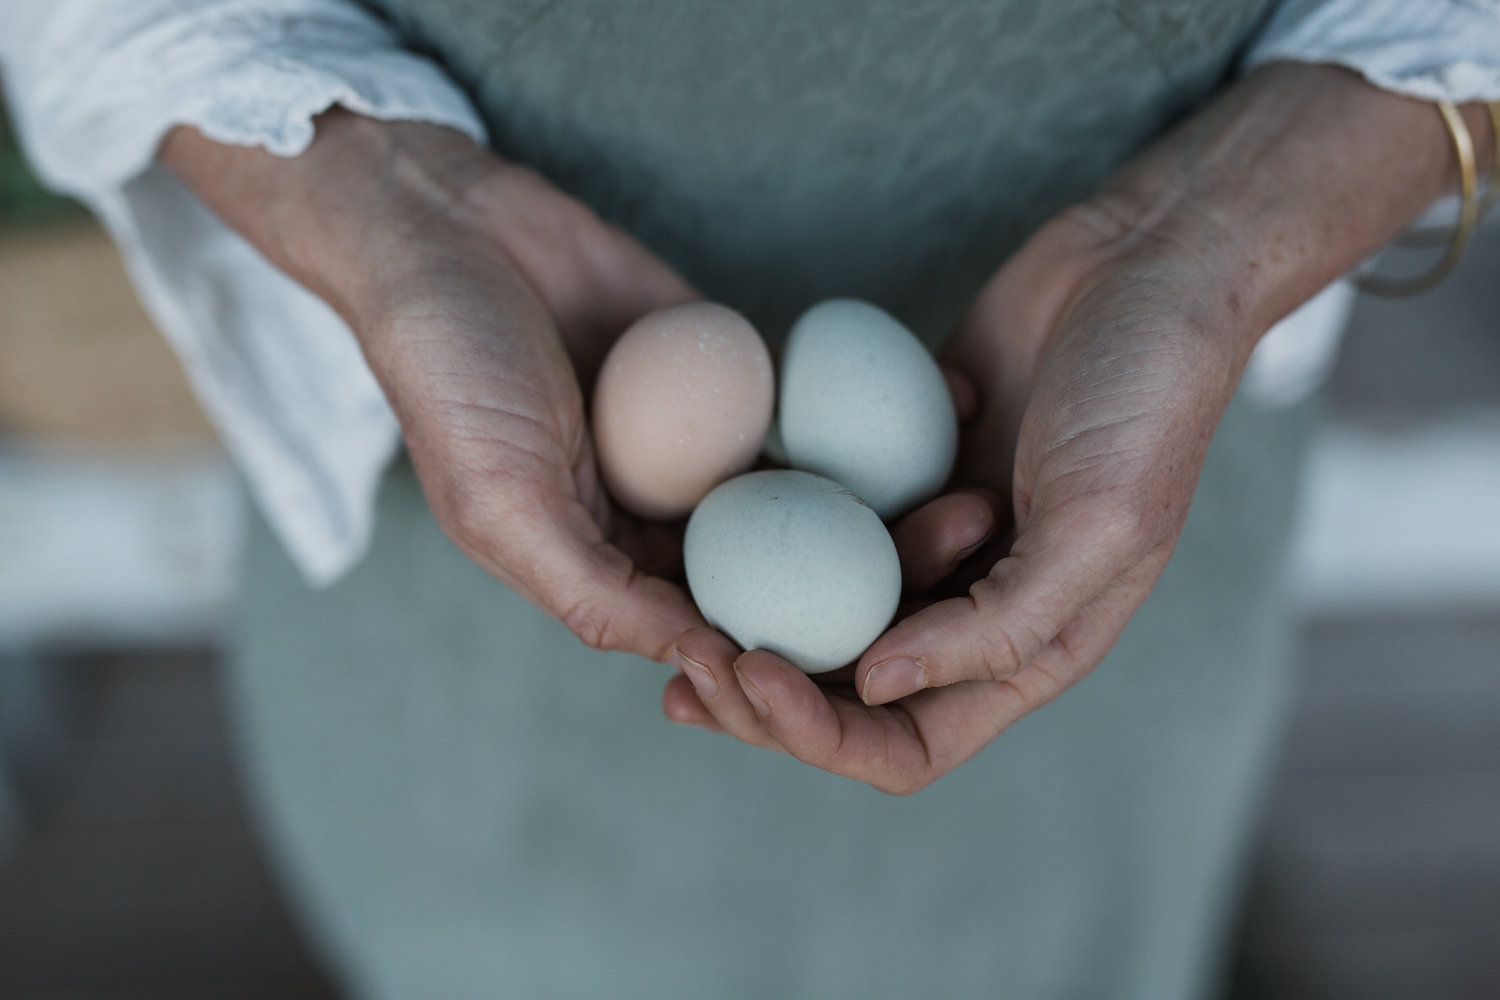 Wild Delicious Gallery image hands holding eggs